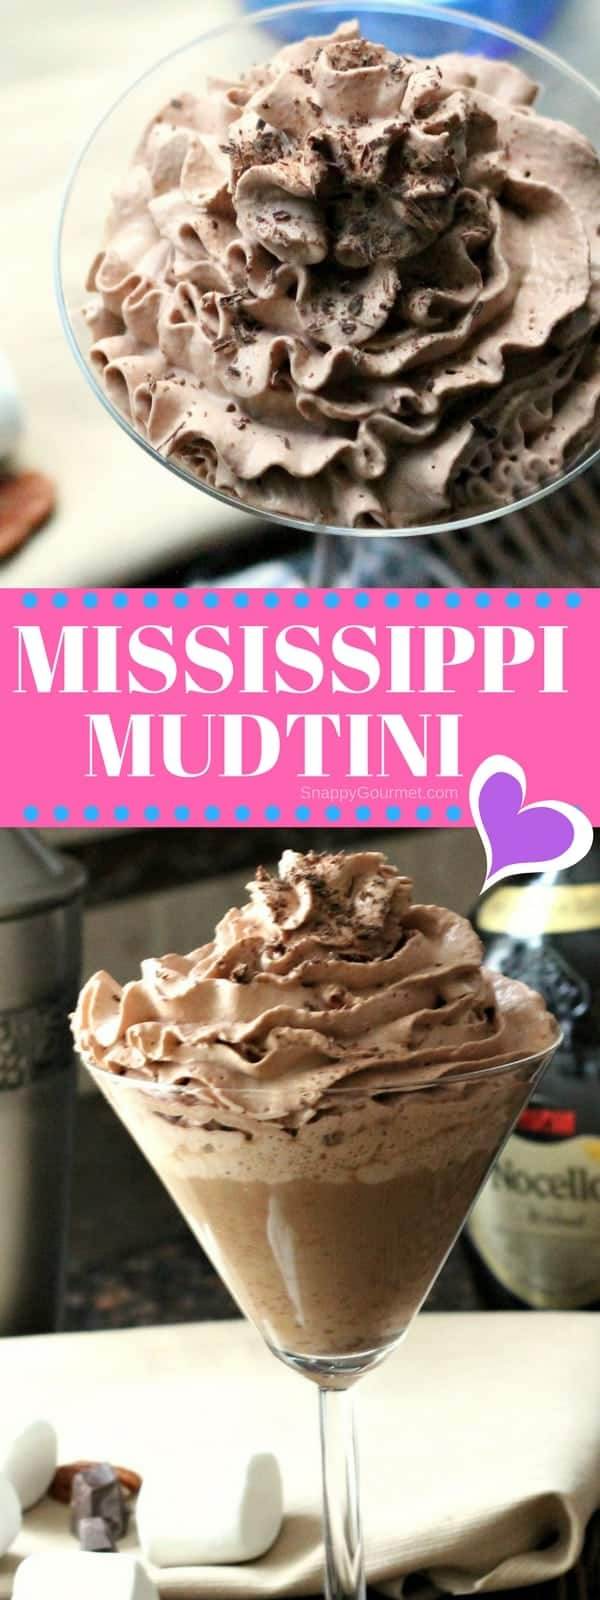 Mississippi Mudtini Cocktail Recipe - an easy chocolate martini recipe with marshmallow vodka, Godiva chocolate liqueur, and Nocello! SnappyGourmet.com